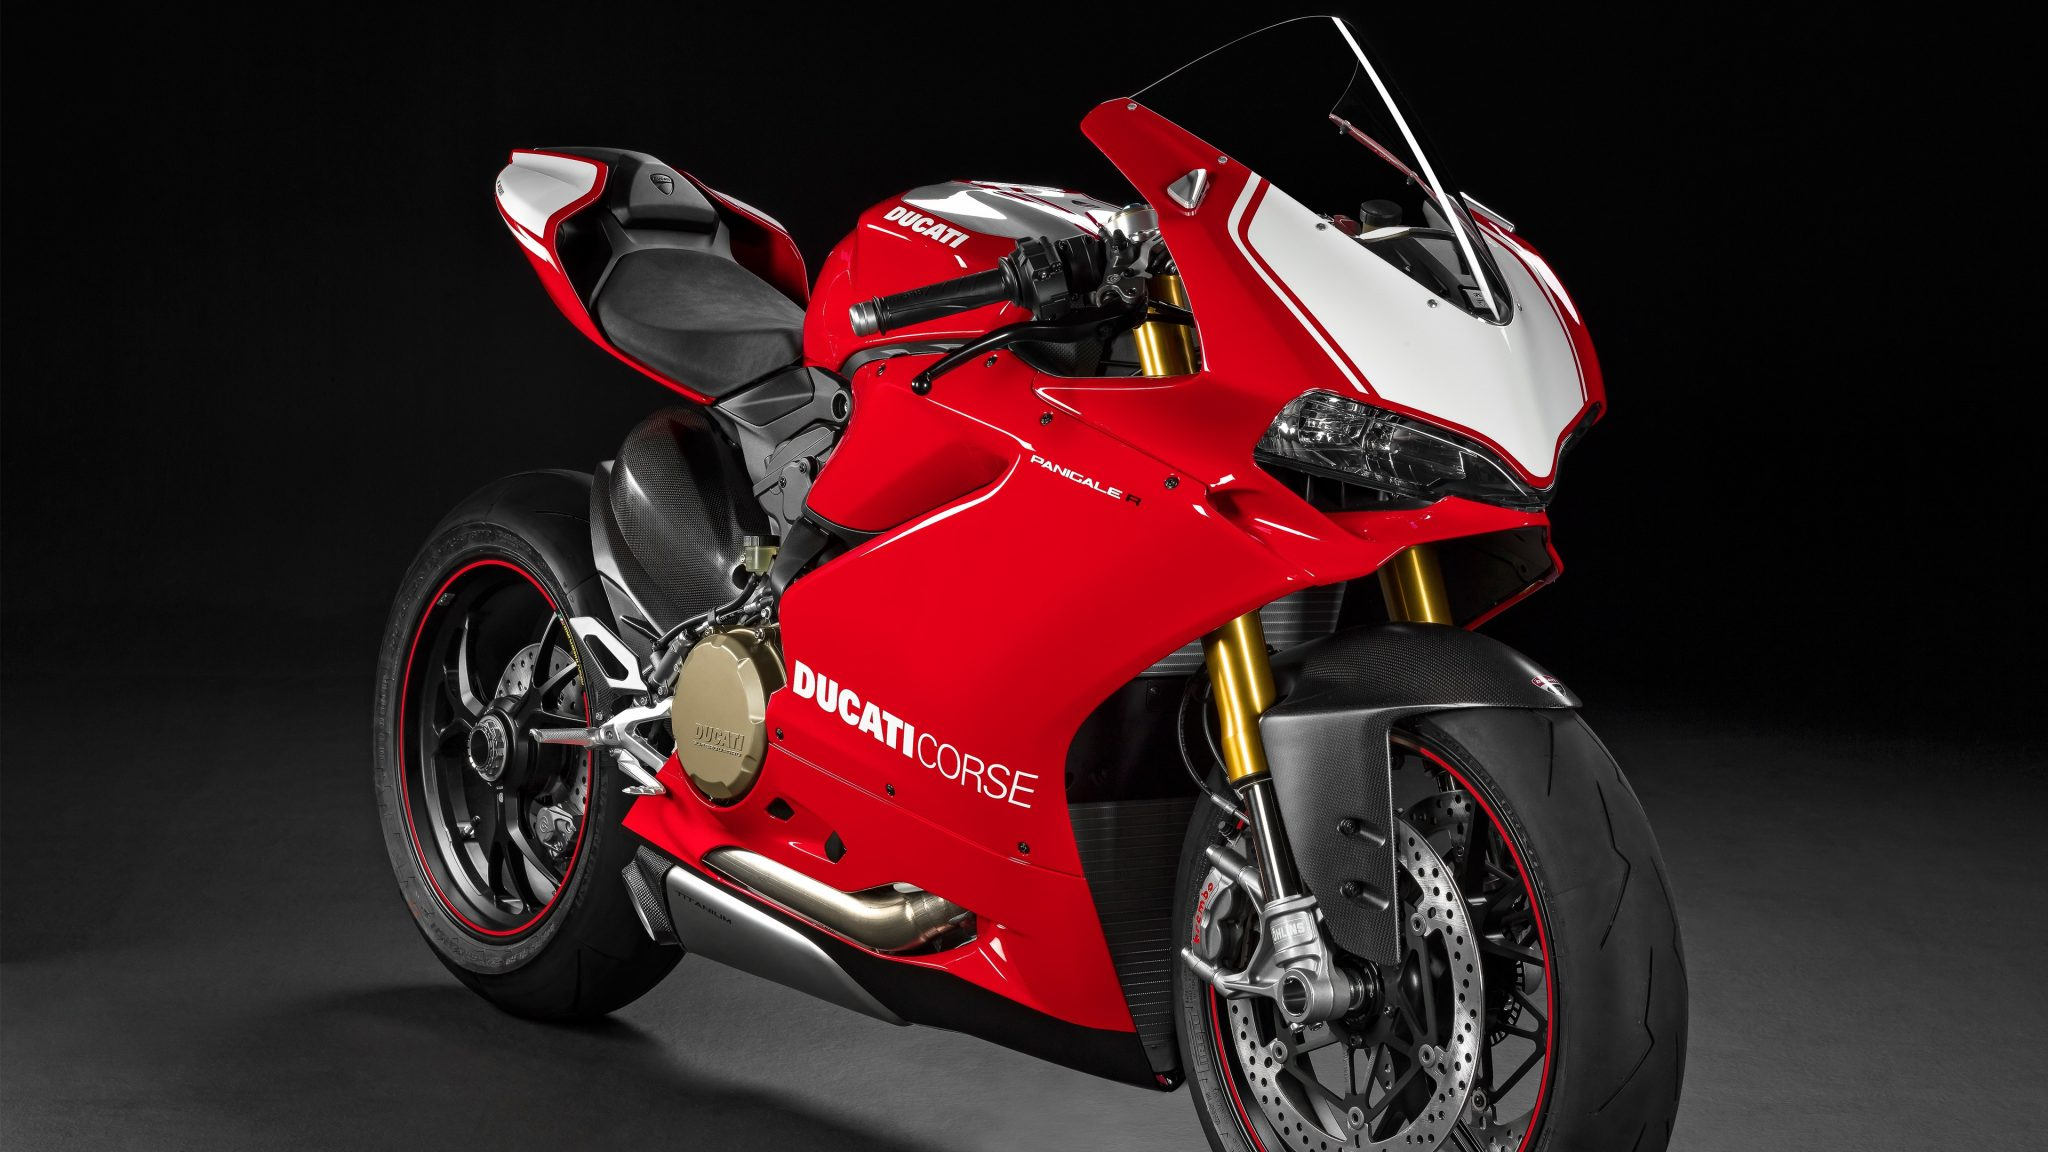 Ducati-Backgrounds-wallpaer-Full-HD-15